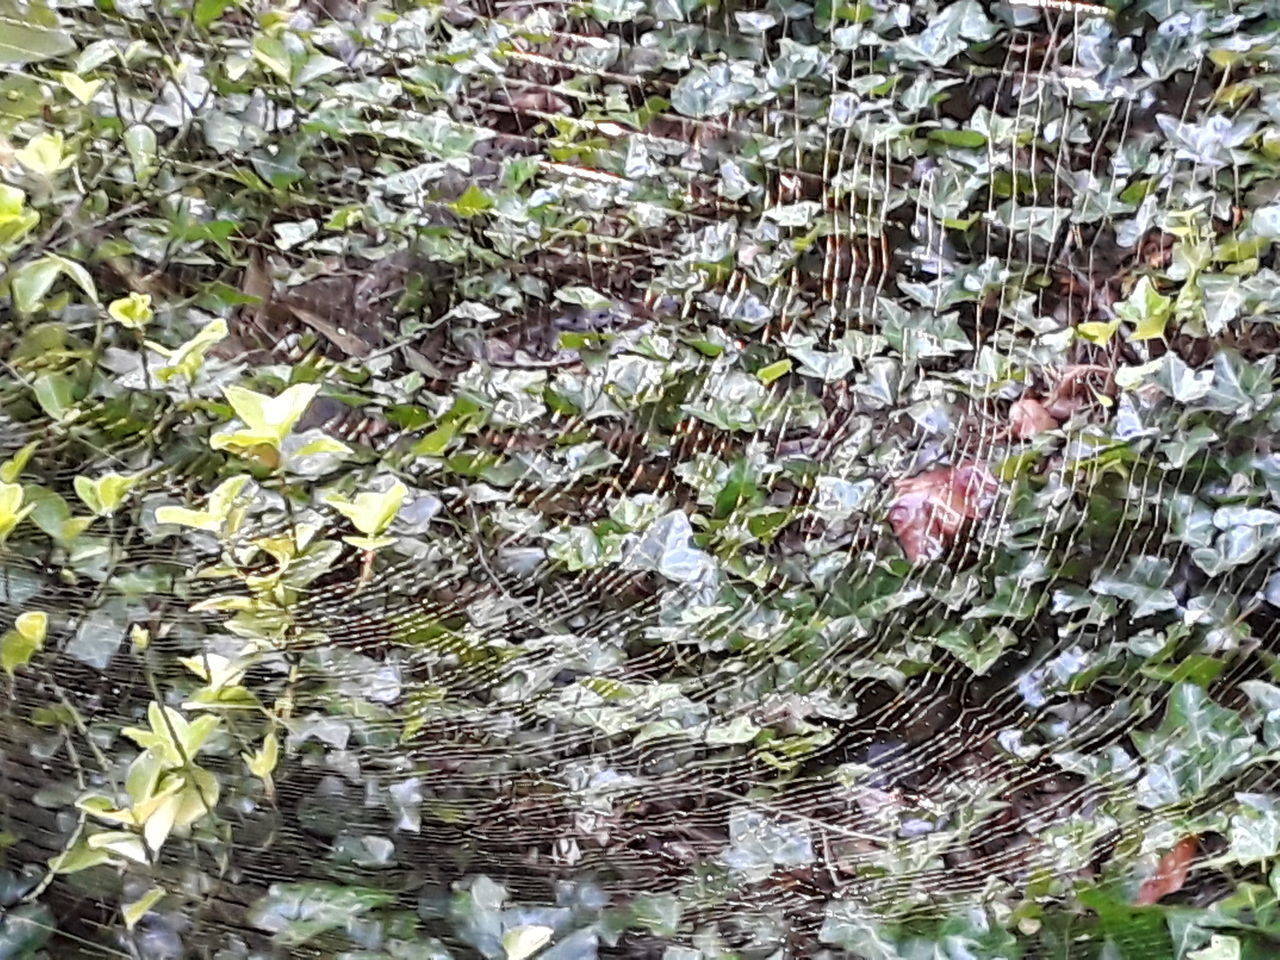 Golden Spiderweb Strings Full Frame Nature No People Backgrounds Plant Leaf Outdoors Growth Beauty In Nature Close-up Spiderwebs Nature Outside Spider Web Fragility Dew On Spider Web ıvy Leaves Ivy